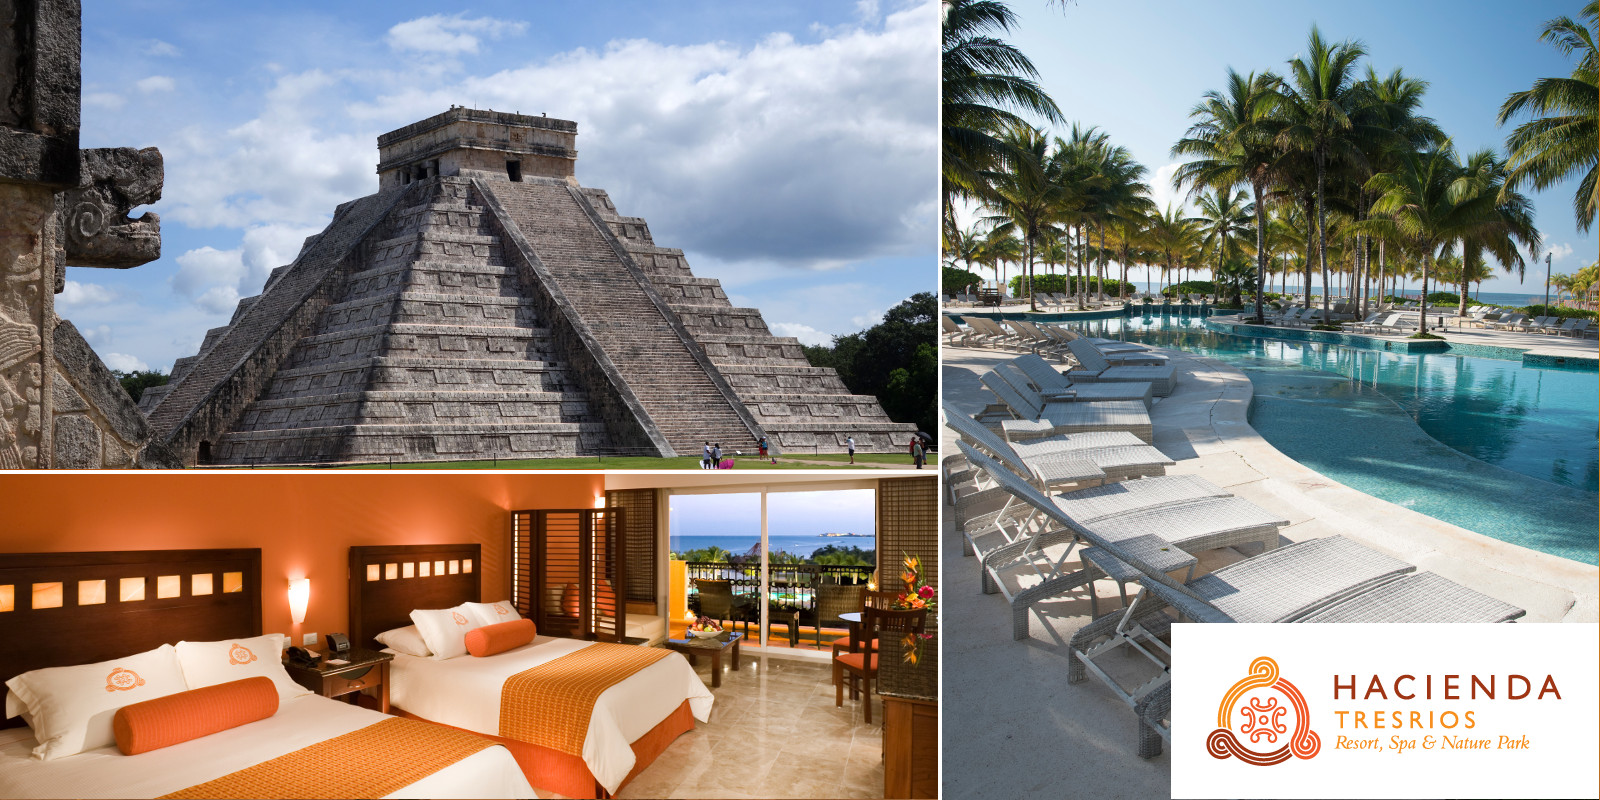 RIVIERA MAYA ALL INCLUSIVE VACATION + CHICHEN ITZA MAYAN RUINS